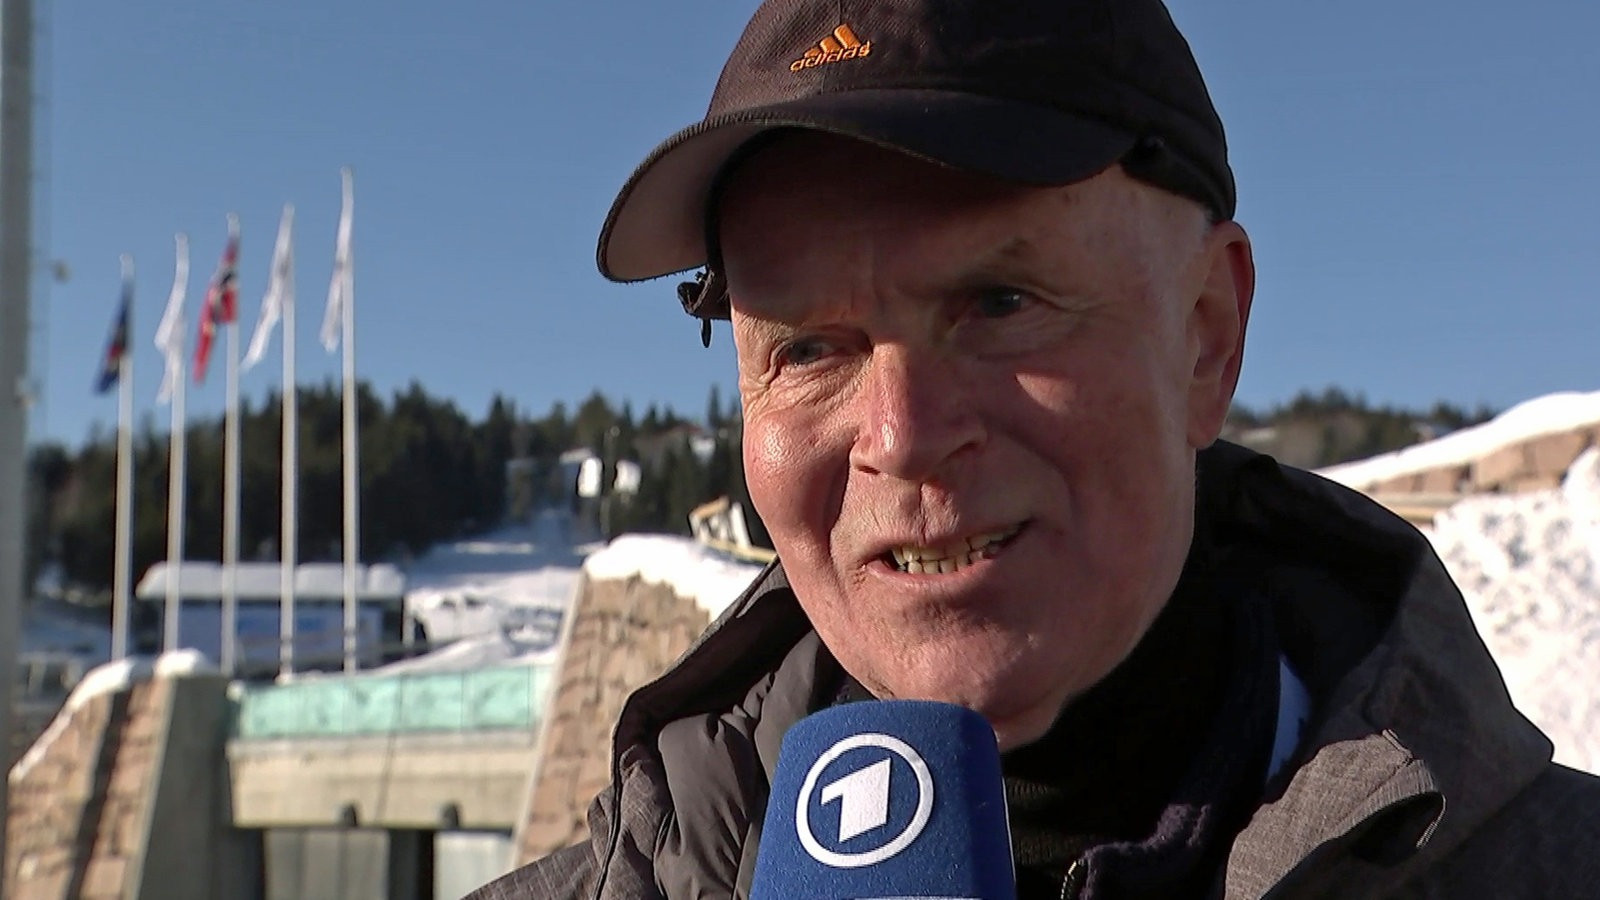 IBU President Anders Besseberg stepped down as President following a raid in April on the organisation's headquarters in Salzburg and him being accused of accepting bribes from Russia ©YouTube